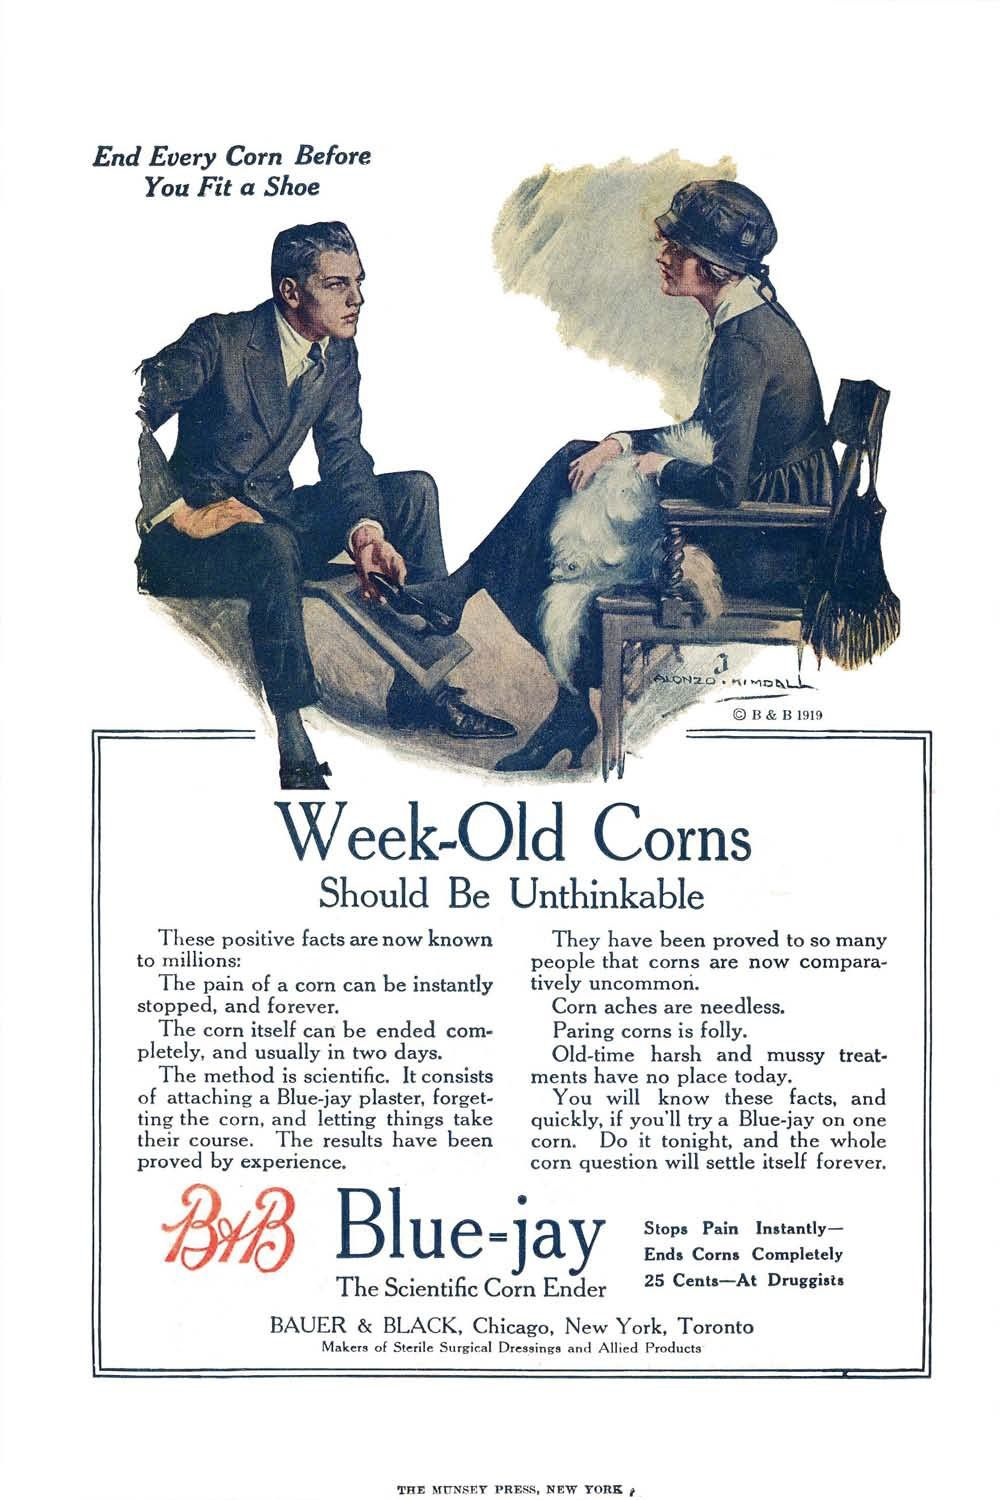 Bauer and Black - All Story Weekly, June 14, 1919